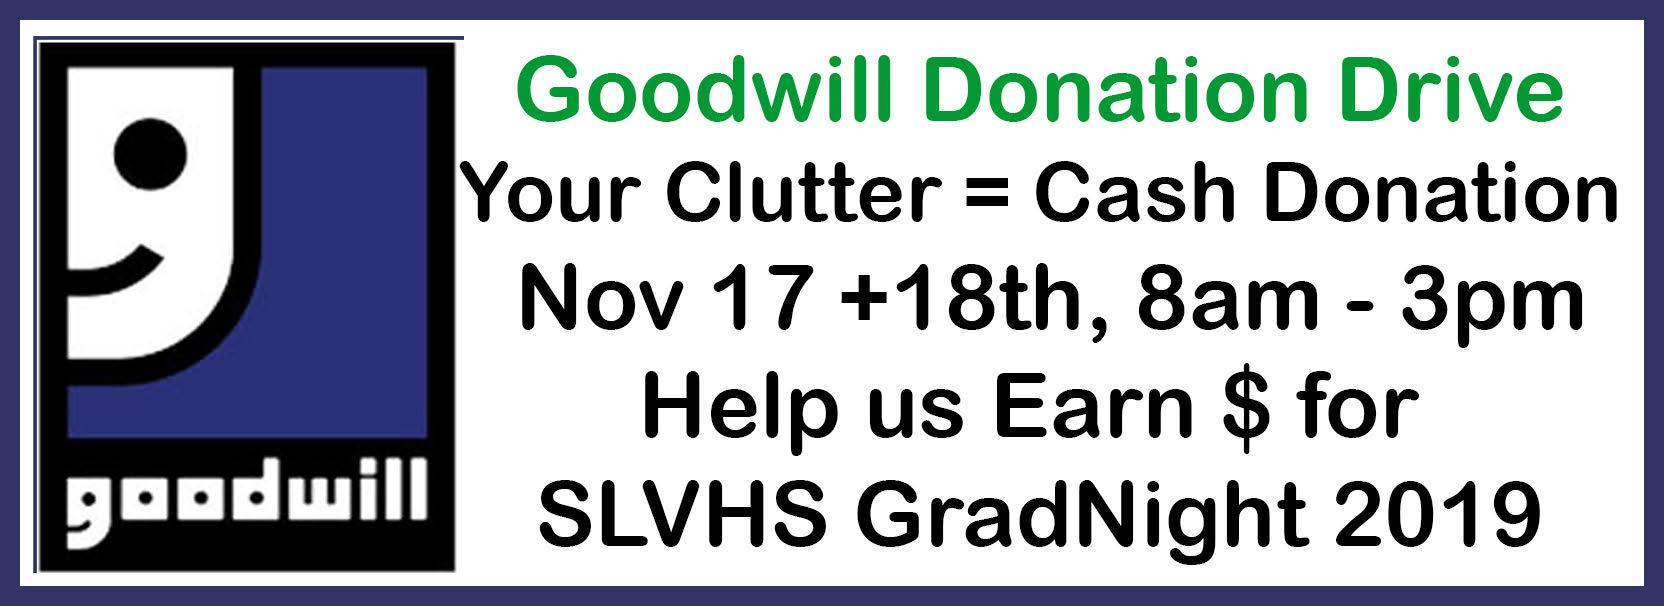 Goodwill Donation Drive Nov. 17-18